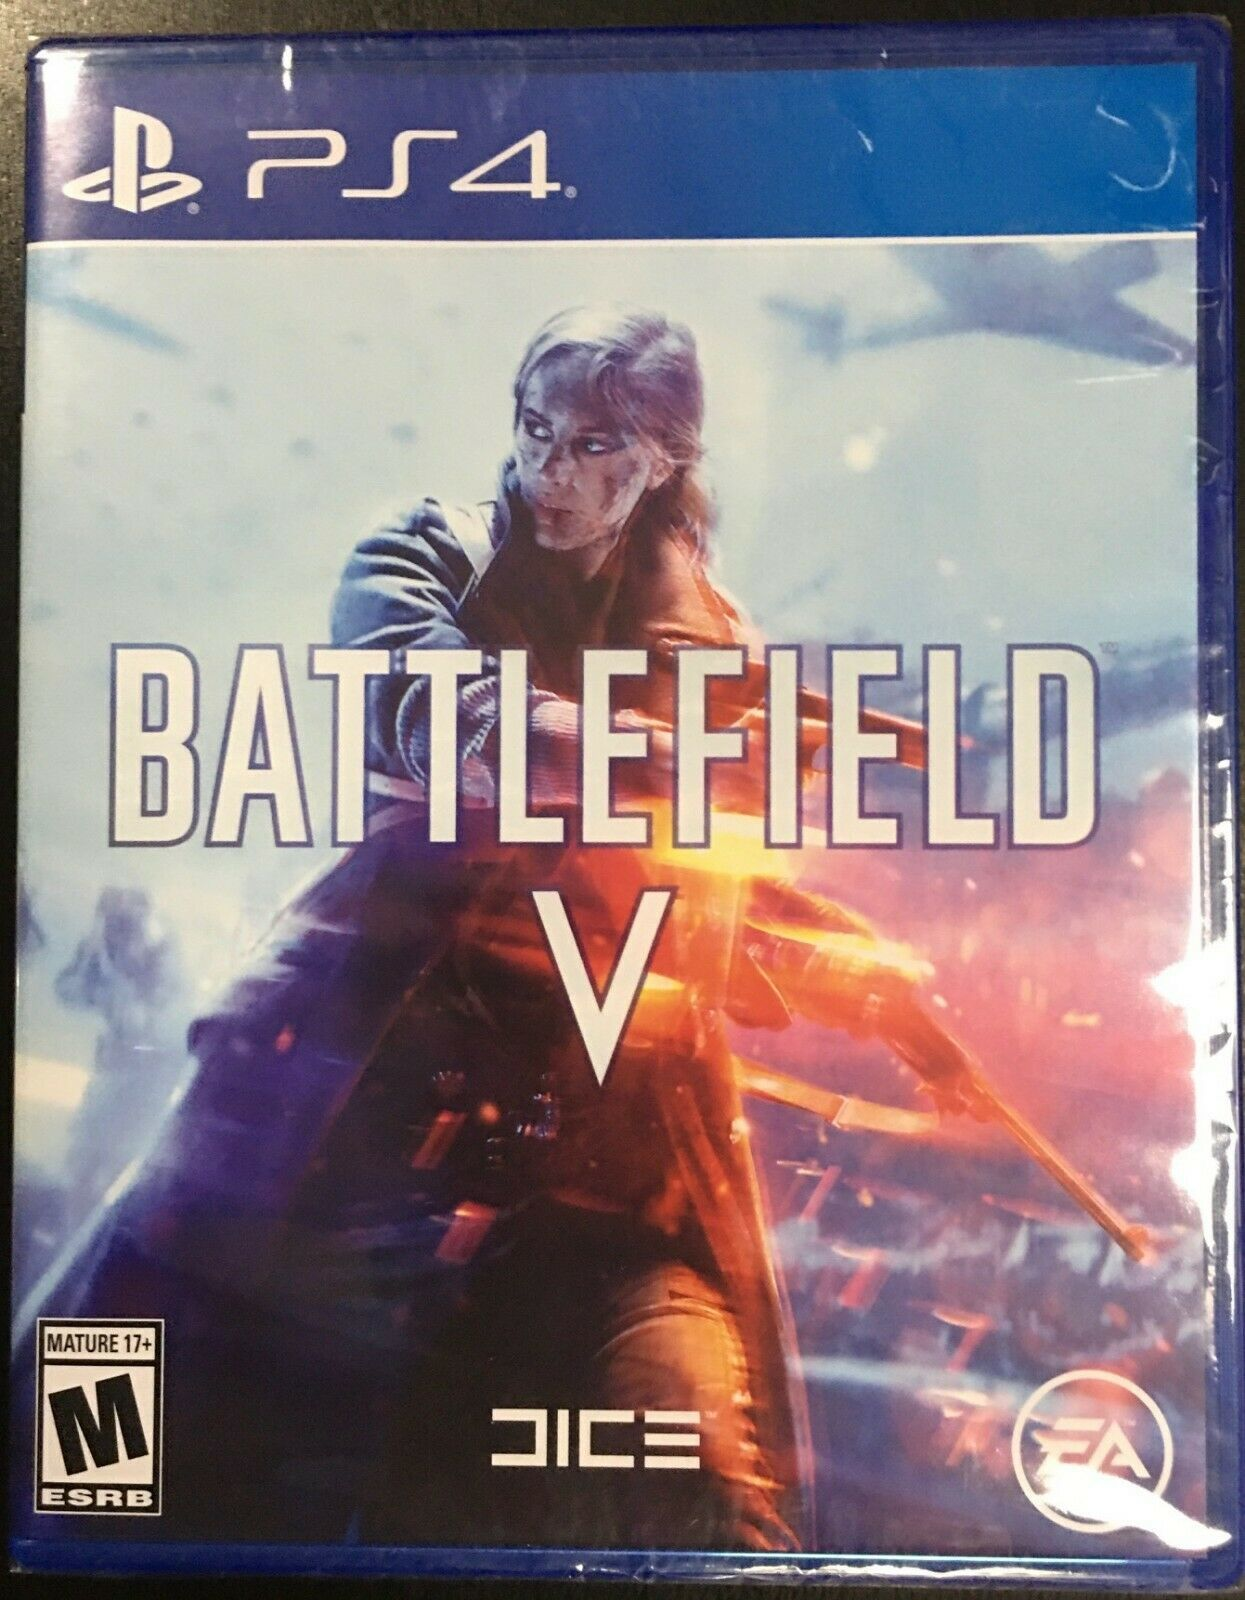 PS4 NEW Sealed Battlefield V PlayStation Video Game Region Free EA Mature